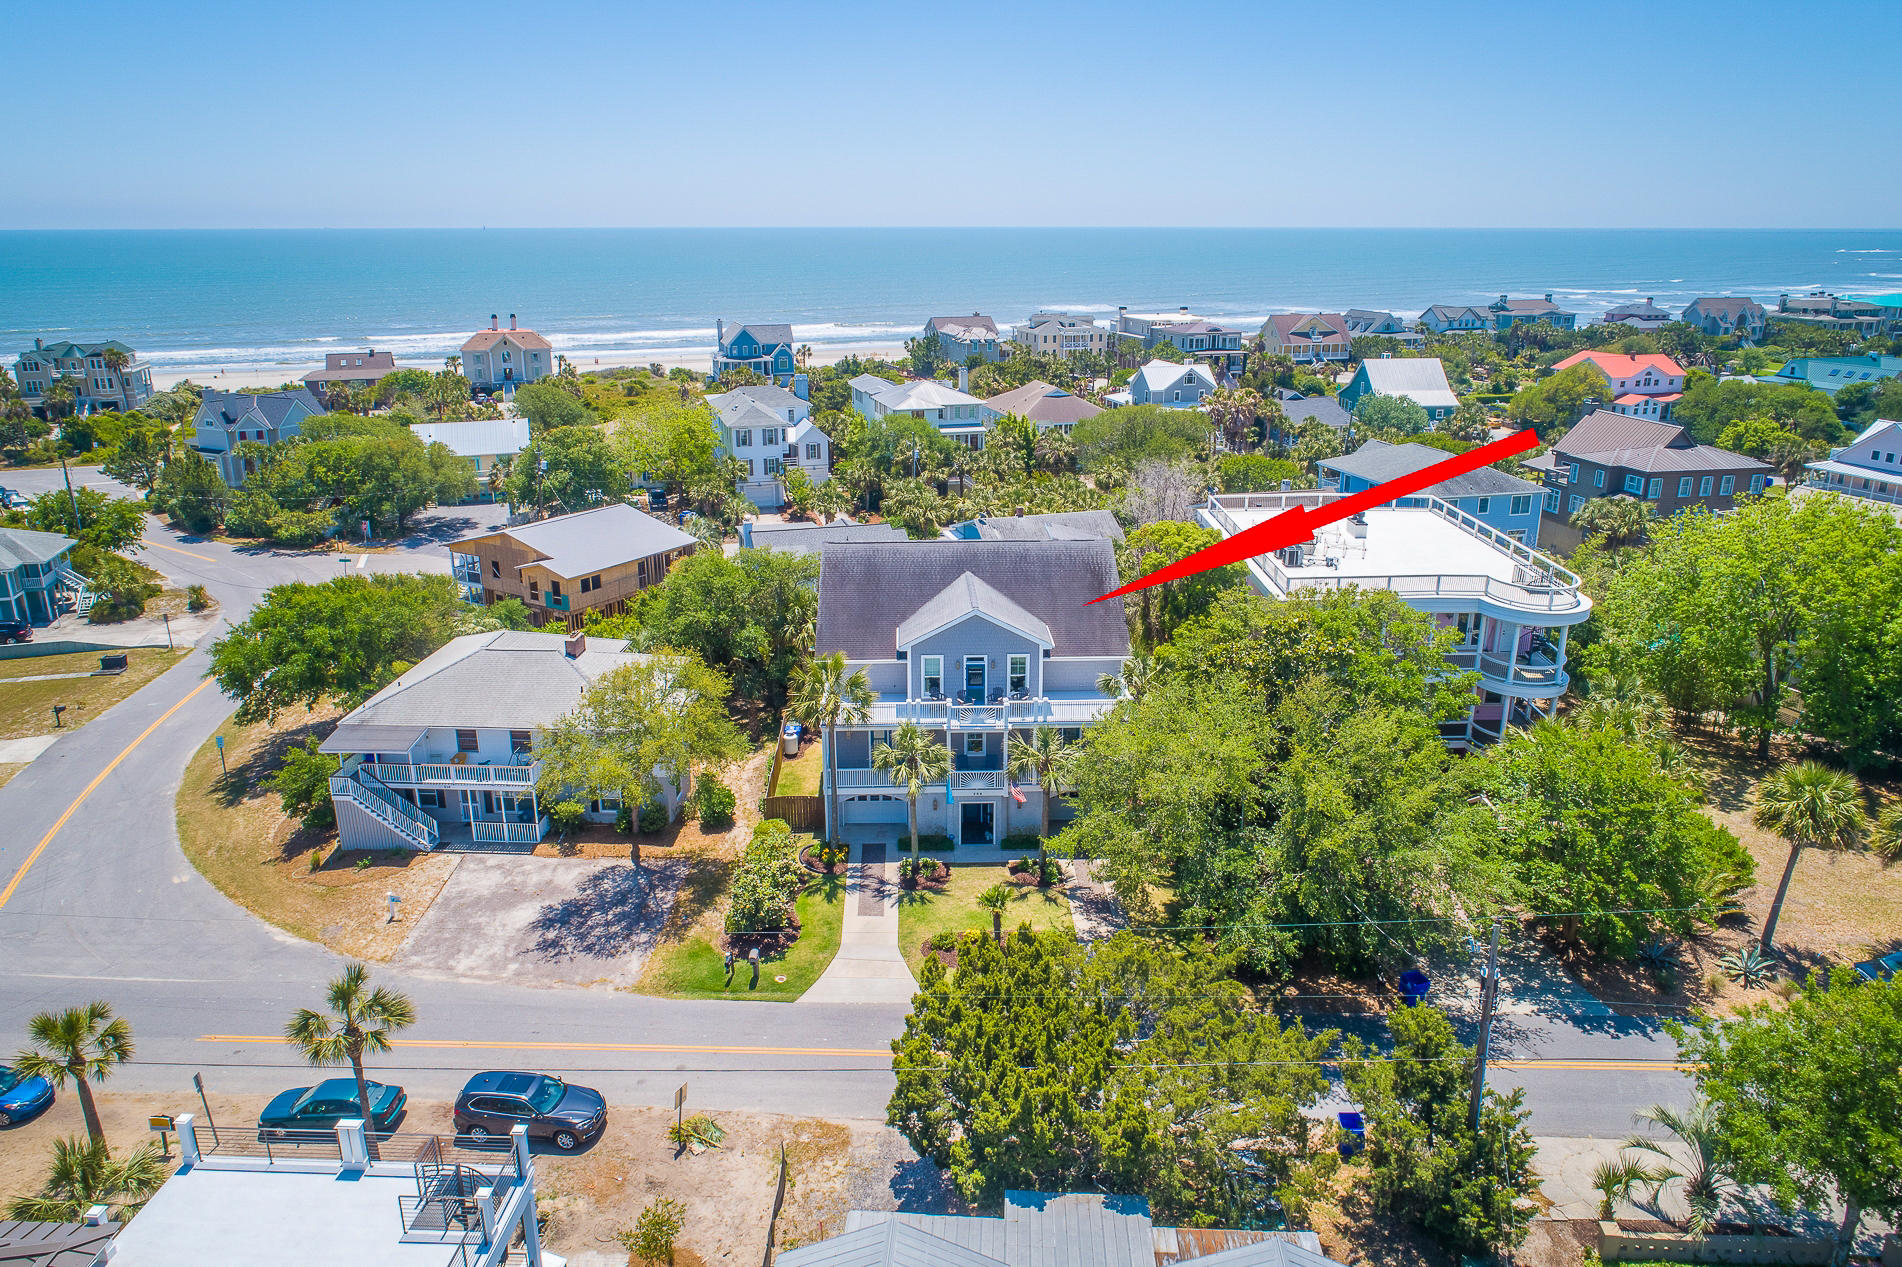 Photo of 308 Carolina Blvd, Isle of Palms, SC 29451